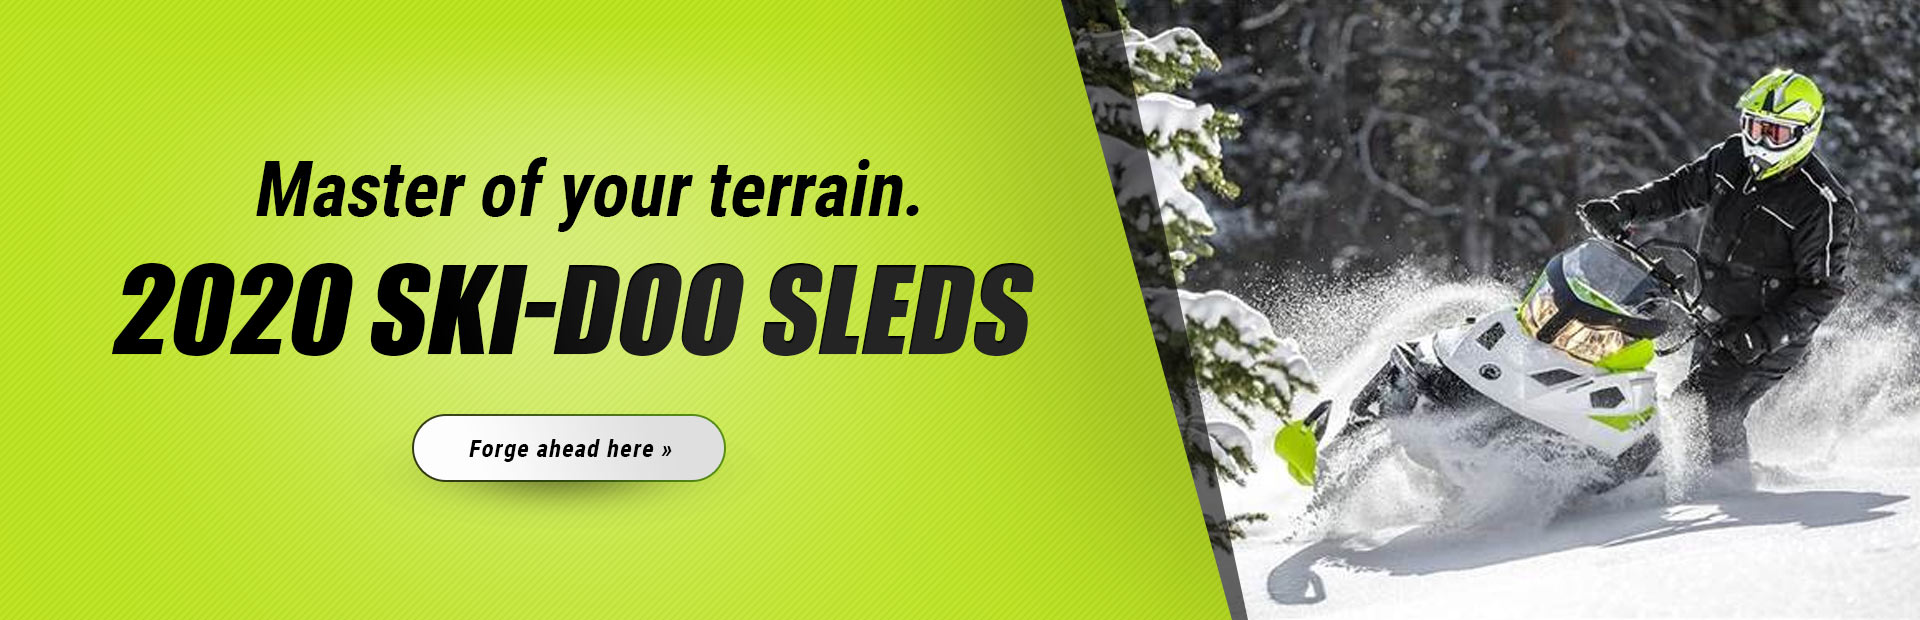 Master of your terrain. 2020 Ski-Doo Sleds: Click here to view our models.